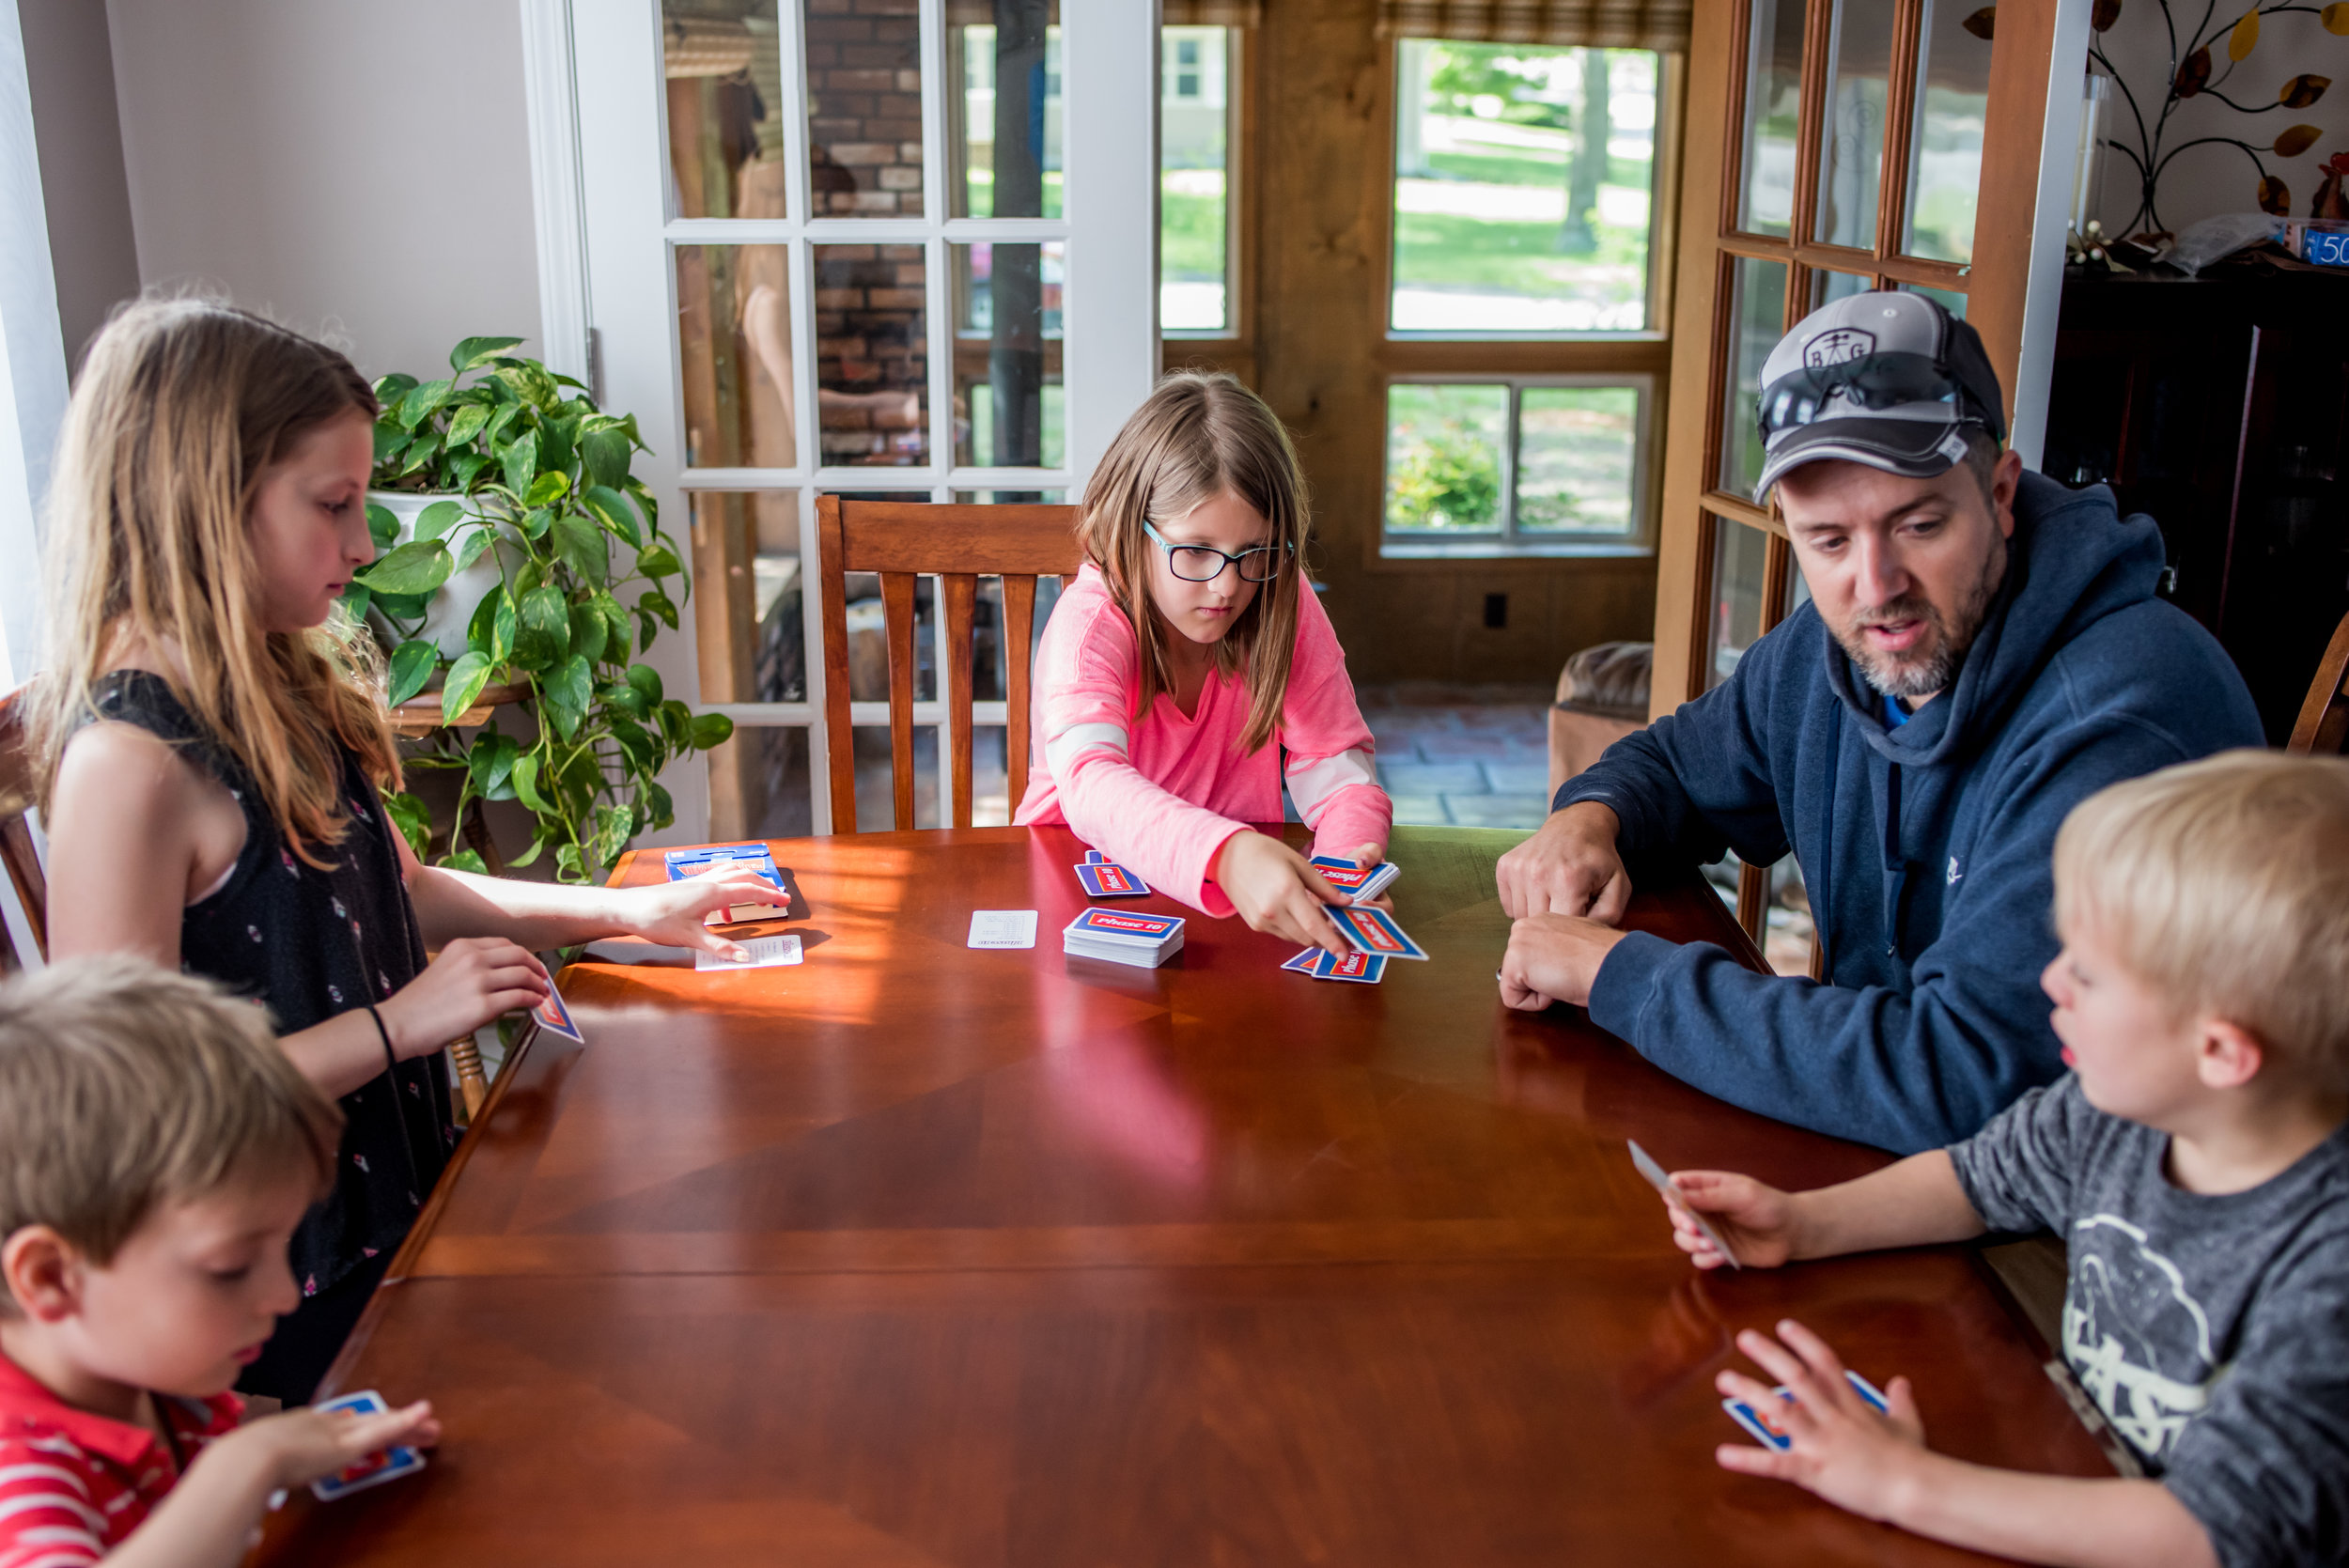 Lots of card games going on when we were with the family.